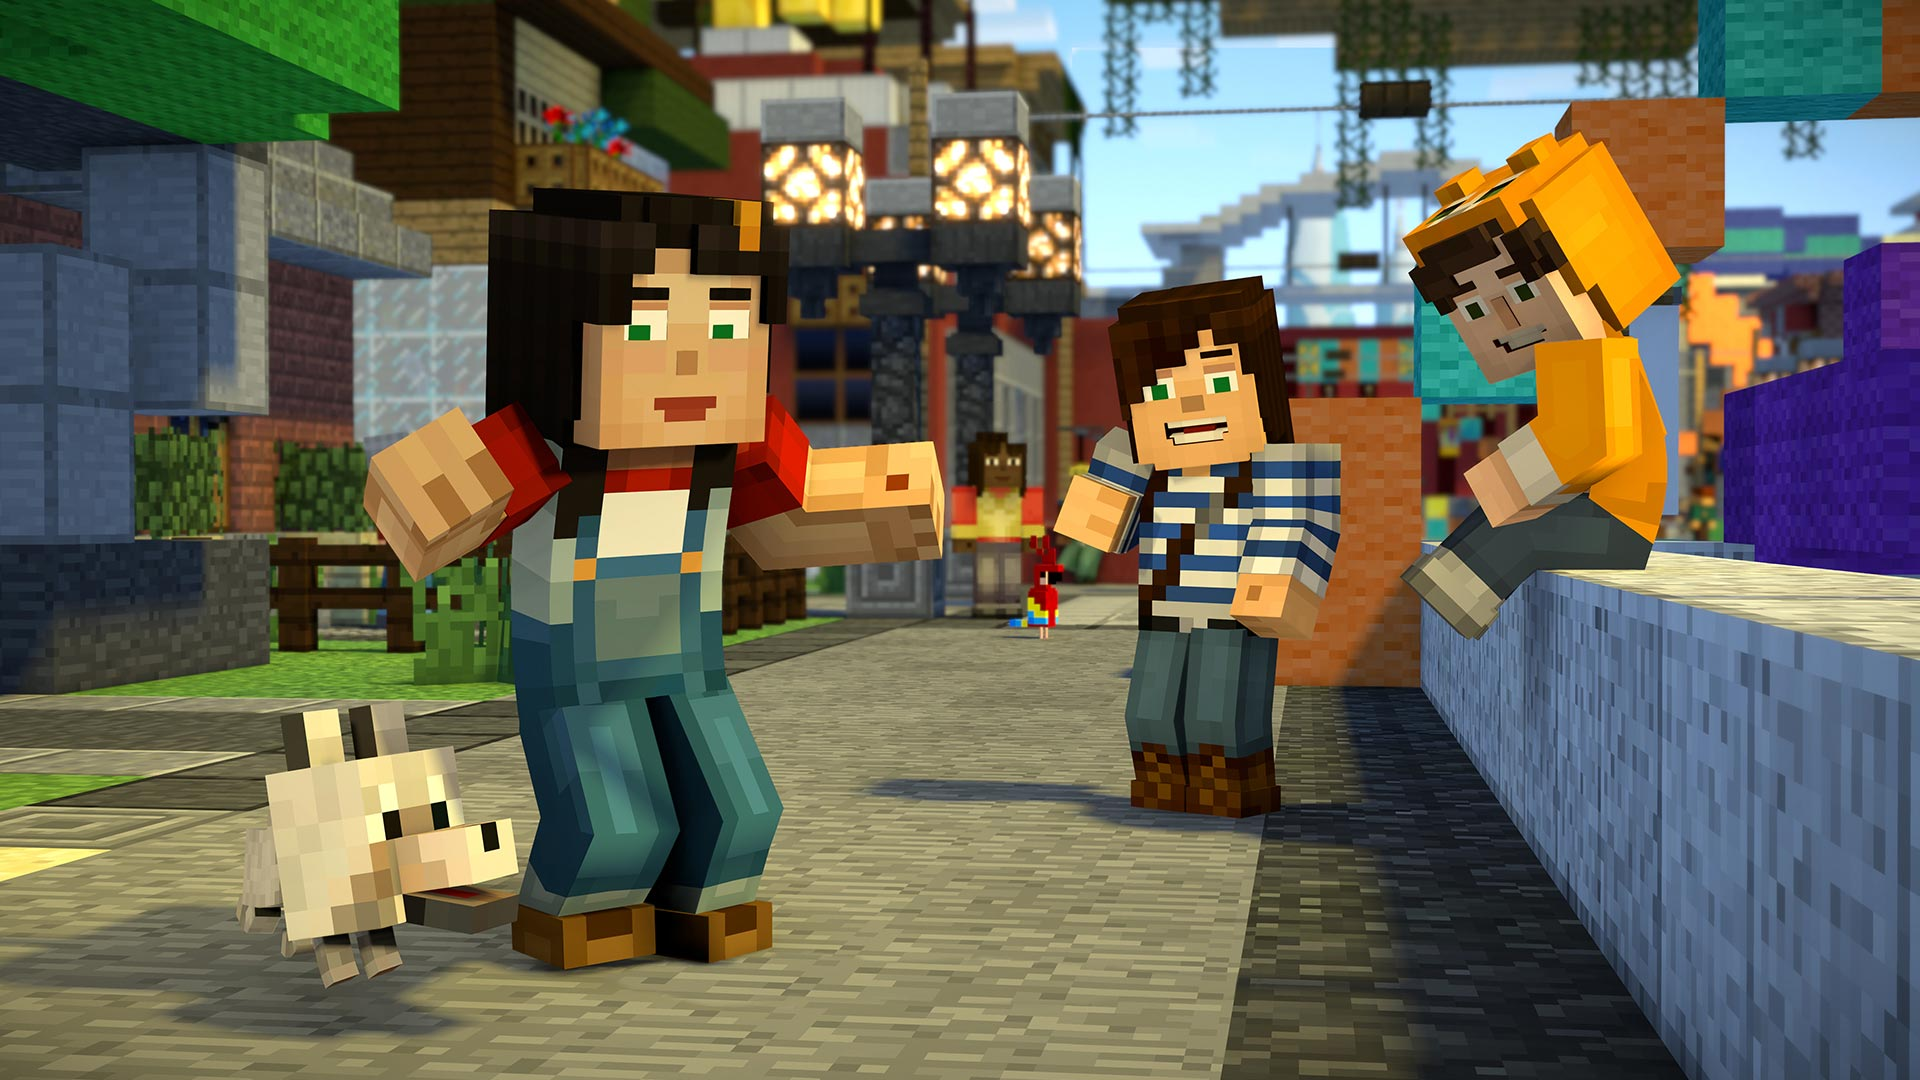 Telltale's Minecraft: Story Mode Season 2 will debut in July